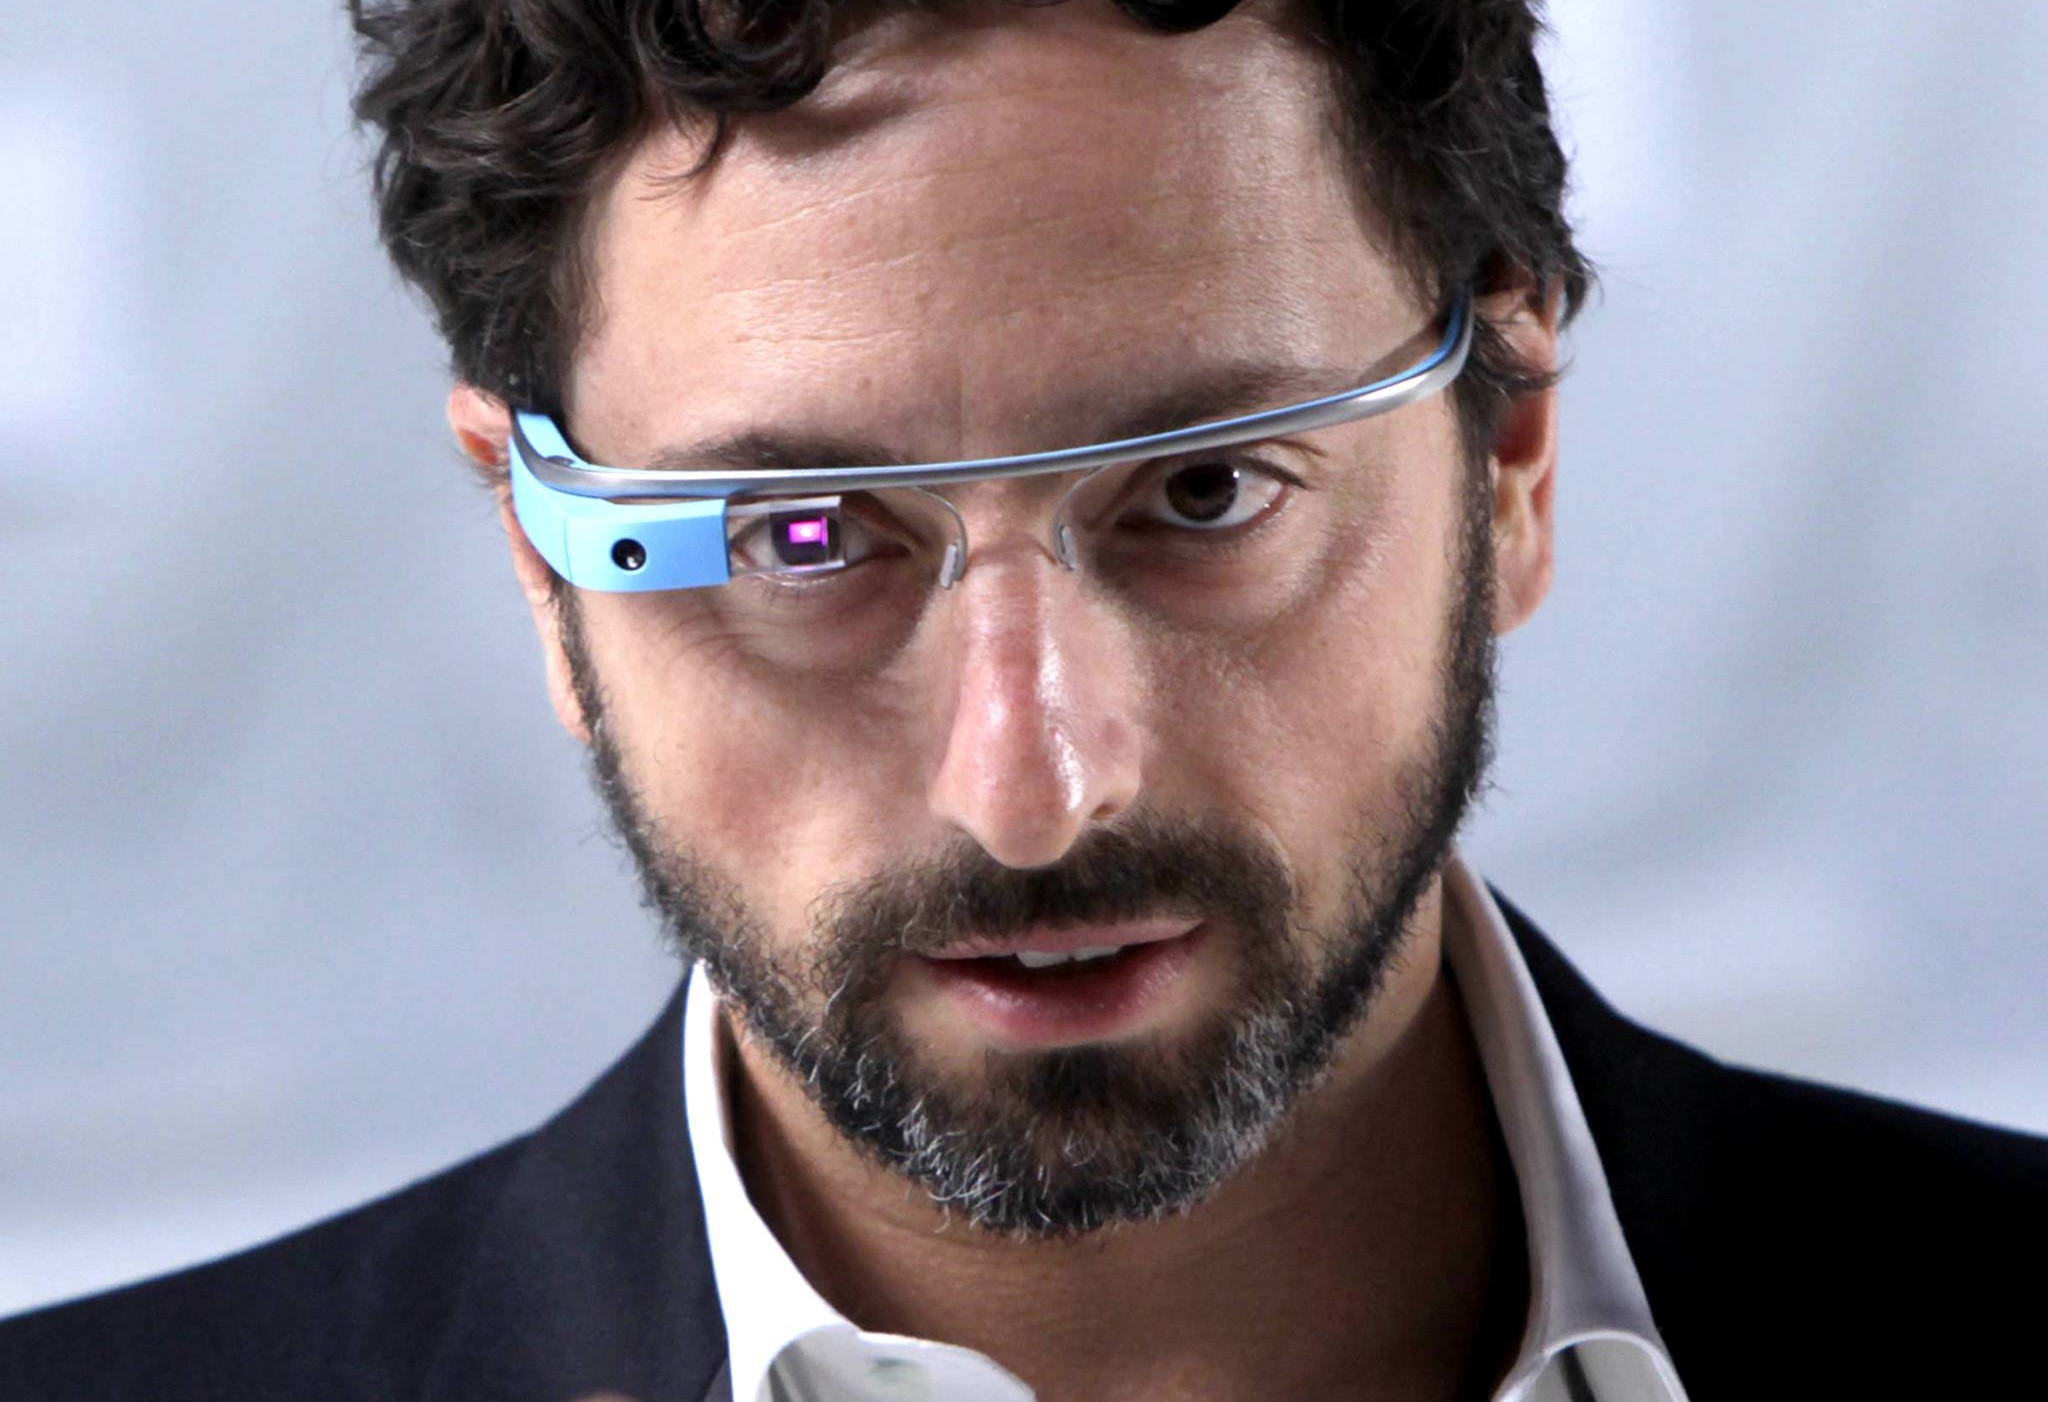 sergey brin wallpapers google partner Renegade Tribune 2048x1402